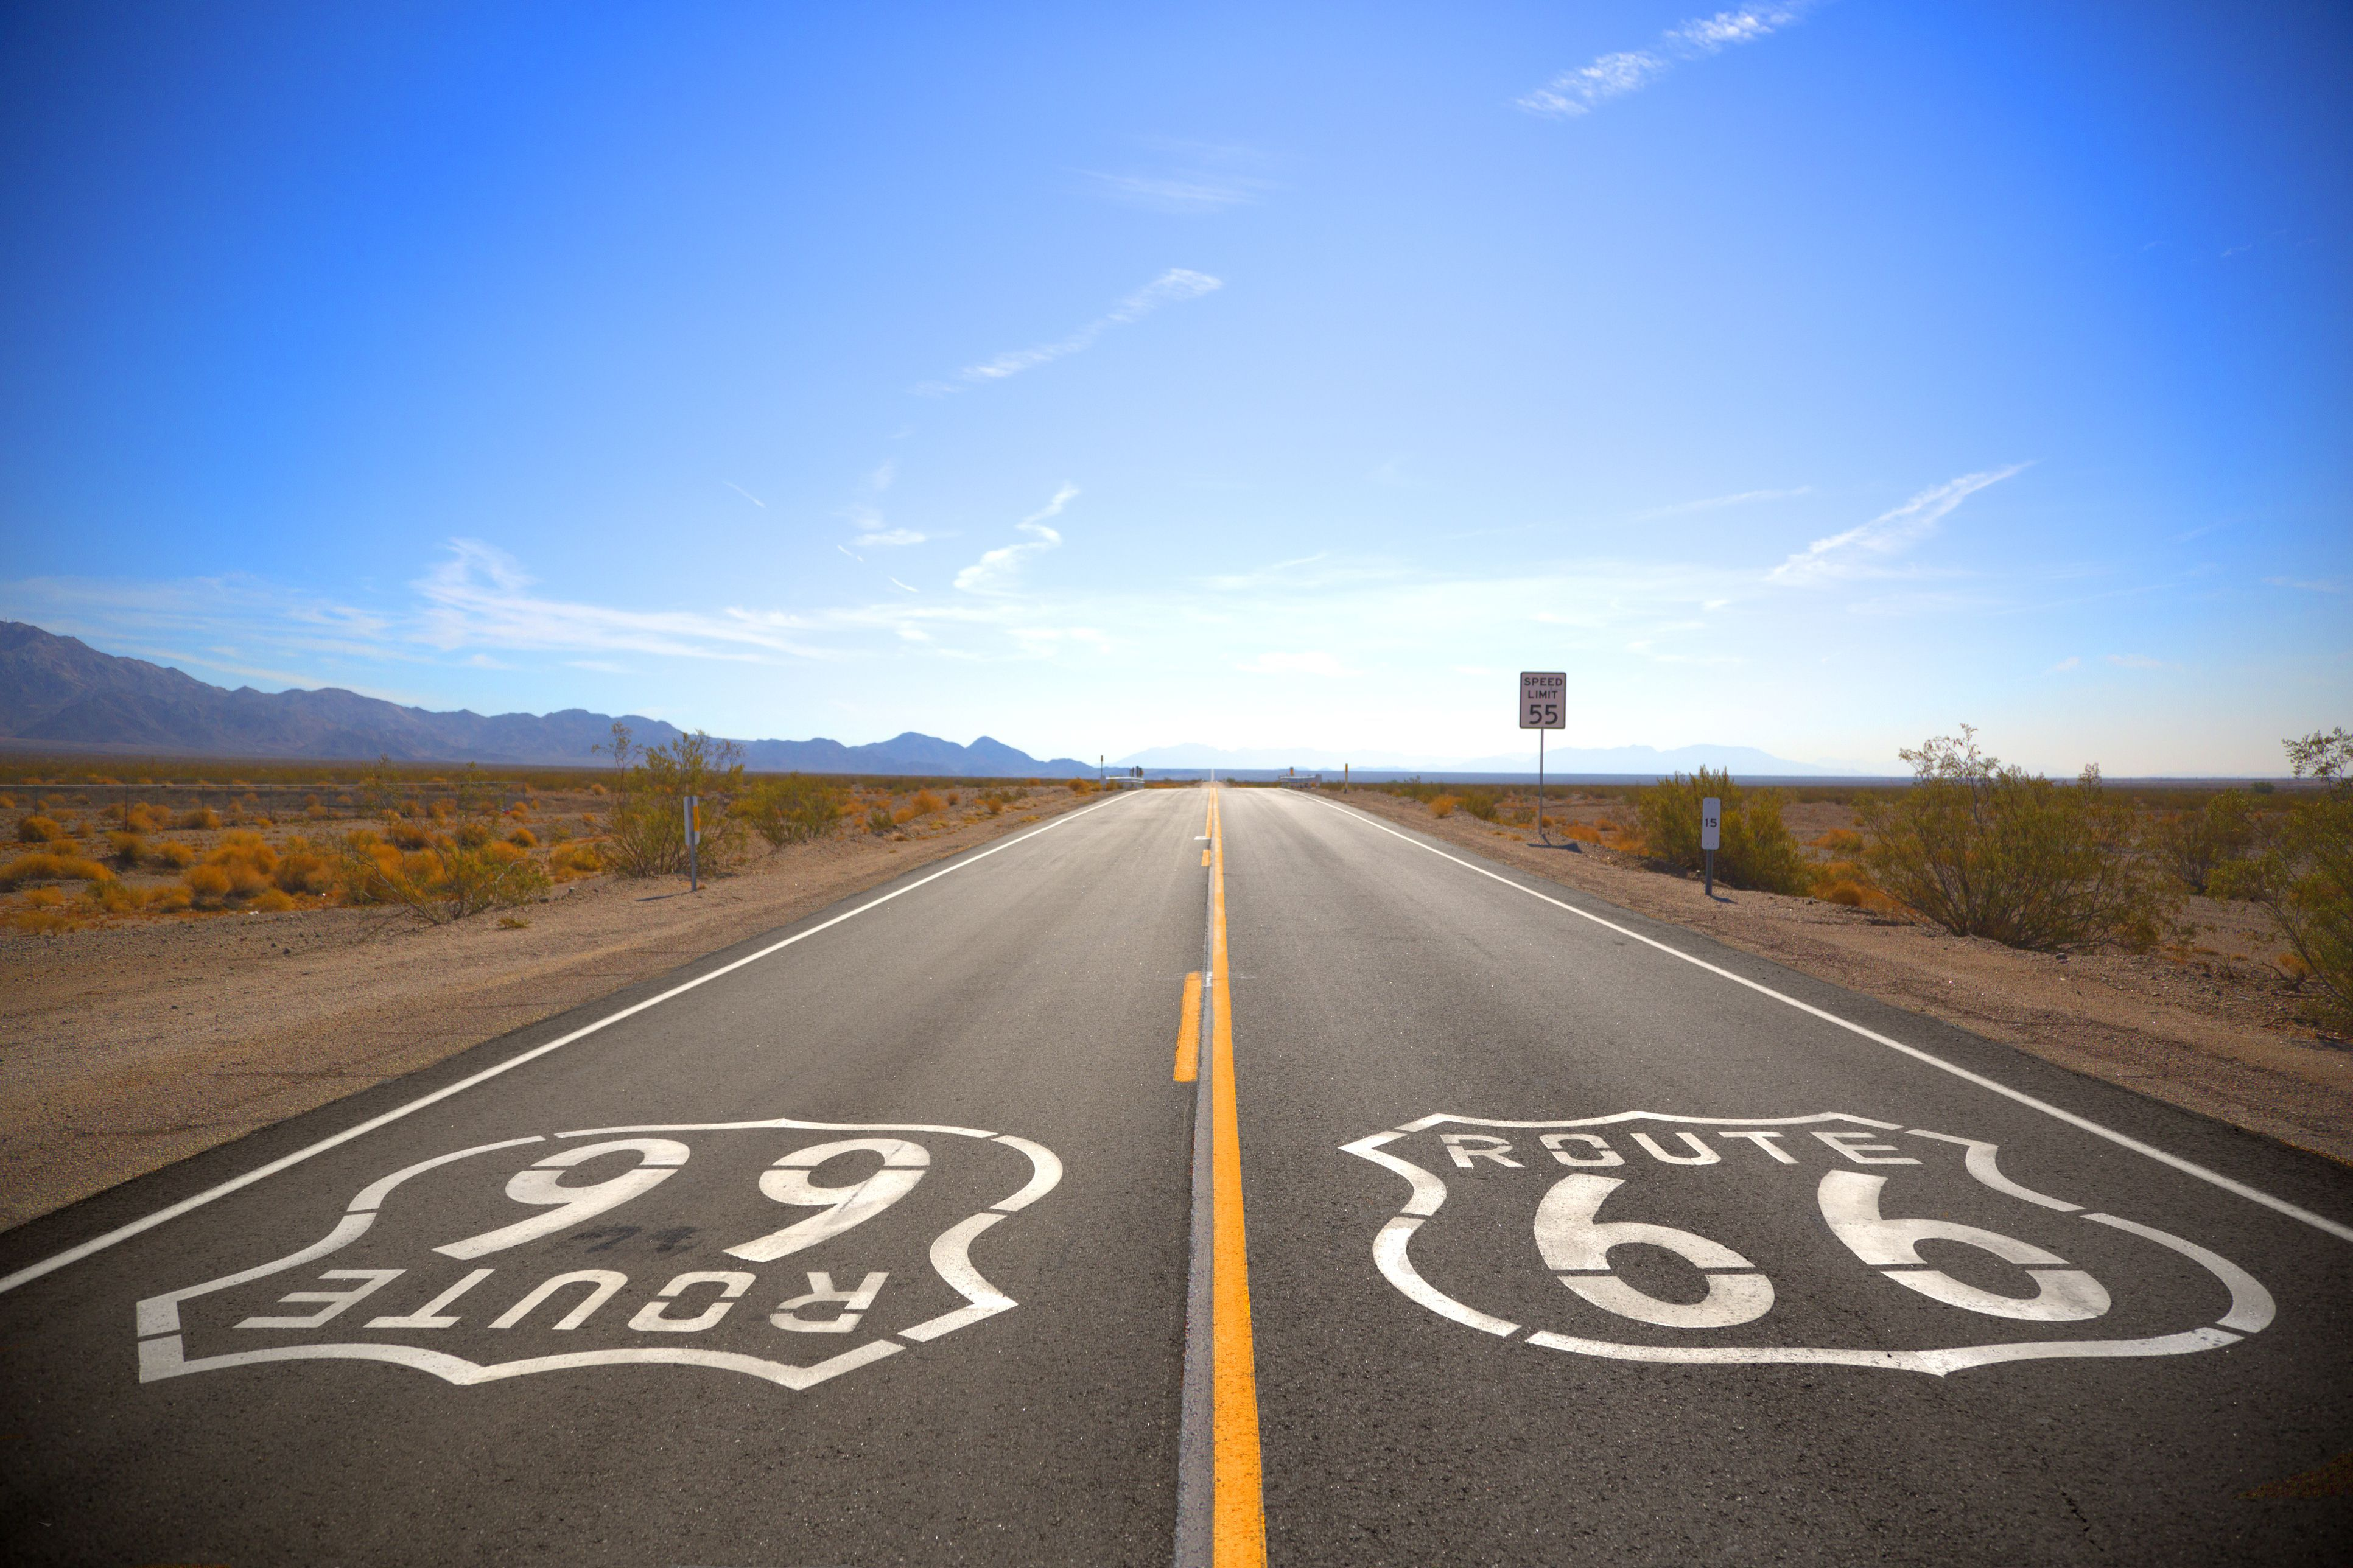 Route 66 in California: Driving Tour and Road Trip